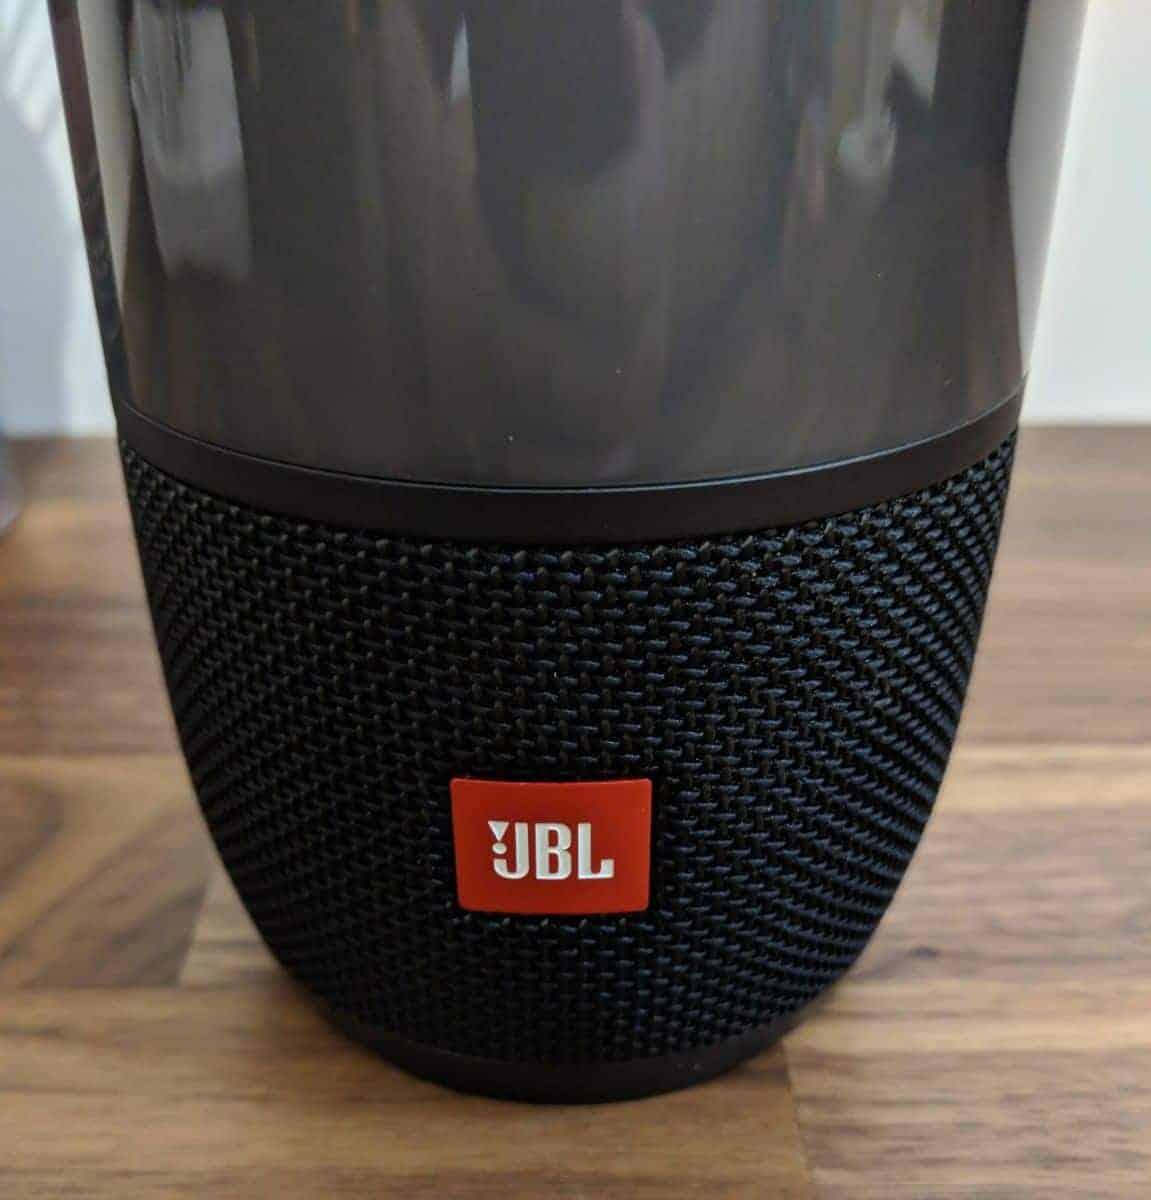 JBL Pulse 3 Review - The Streaming Blog